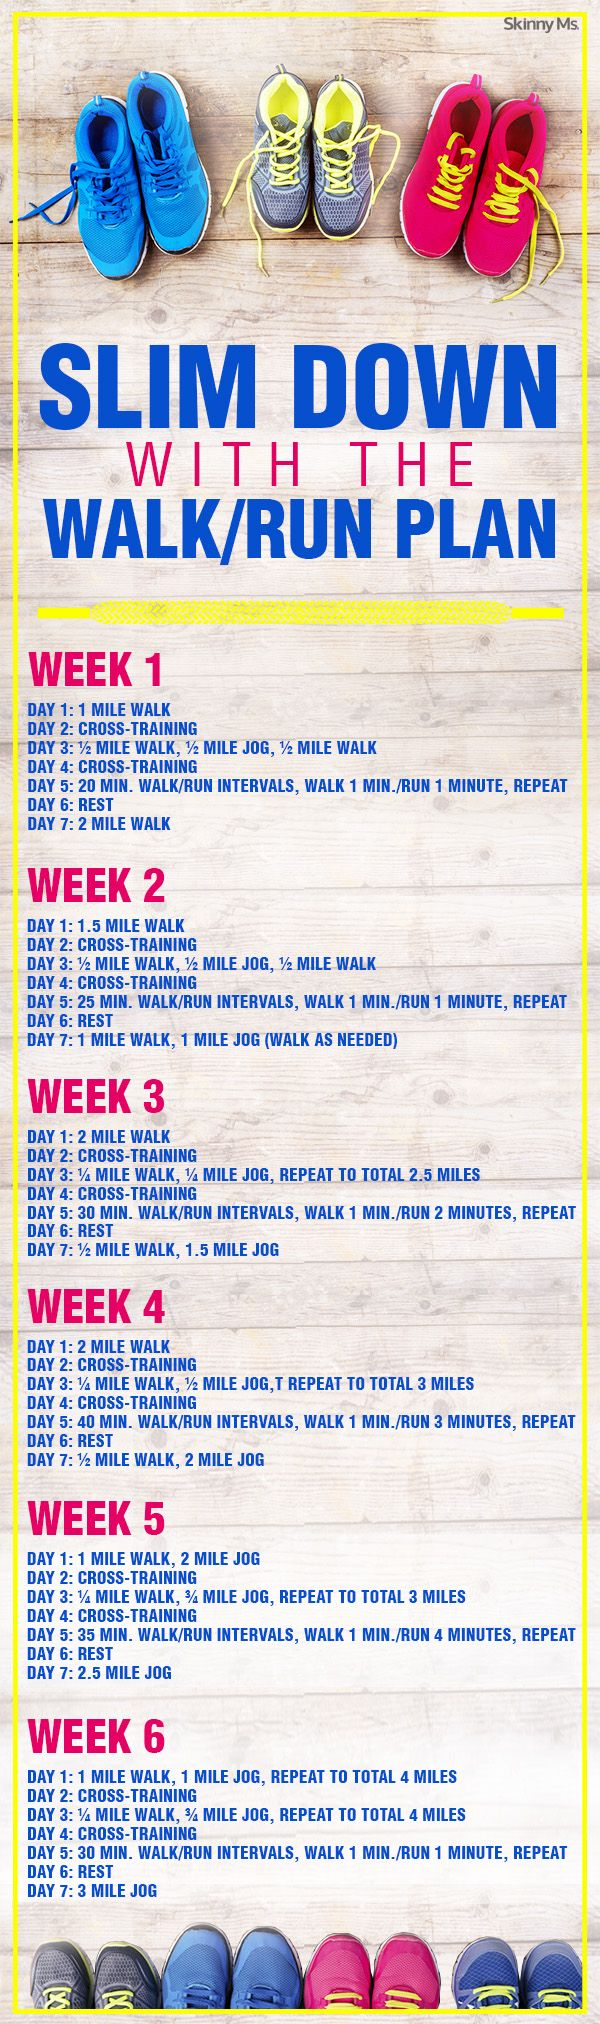 Slim Down with the Walk/Run Plan!  #walkrunplan #running